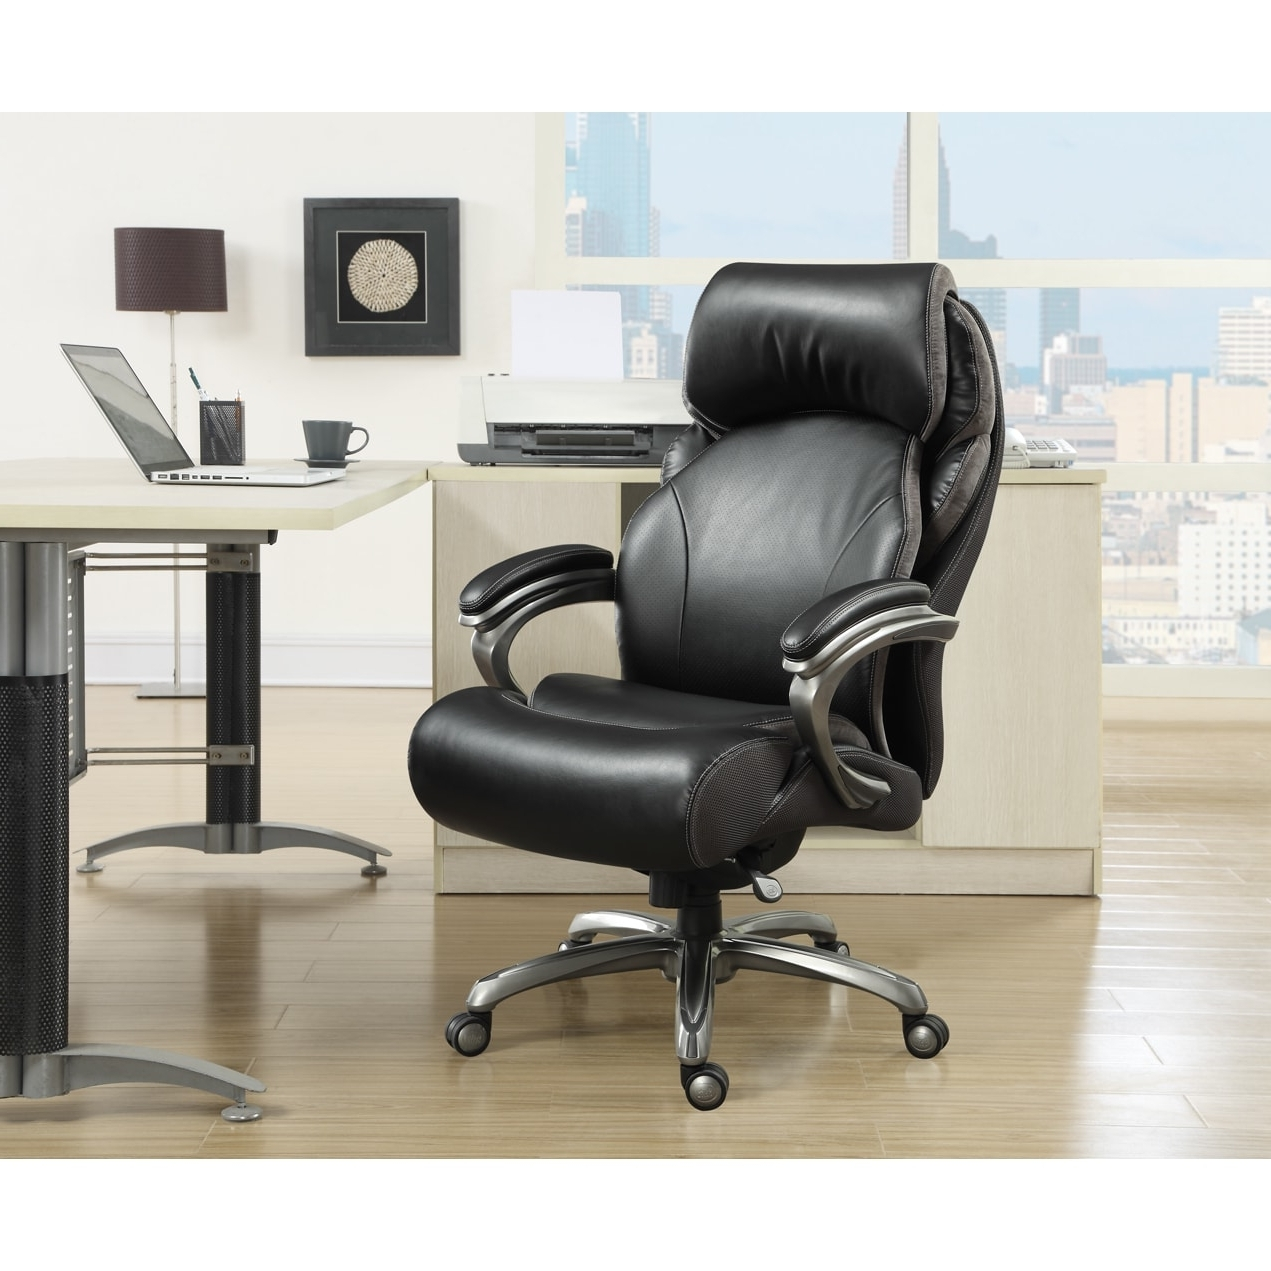 Tall Executive Office Chairs Throughout Latest Serta Big & Tall Tranquility Smart Layers Executive Office Chair (View 18 of 20)